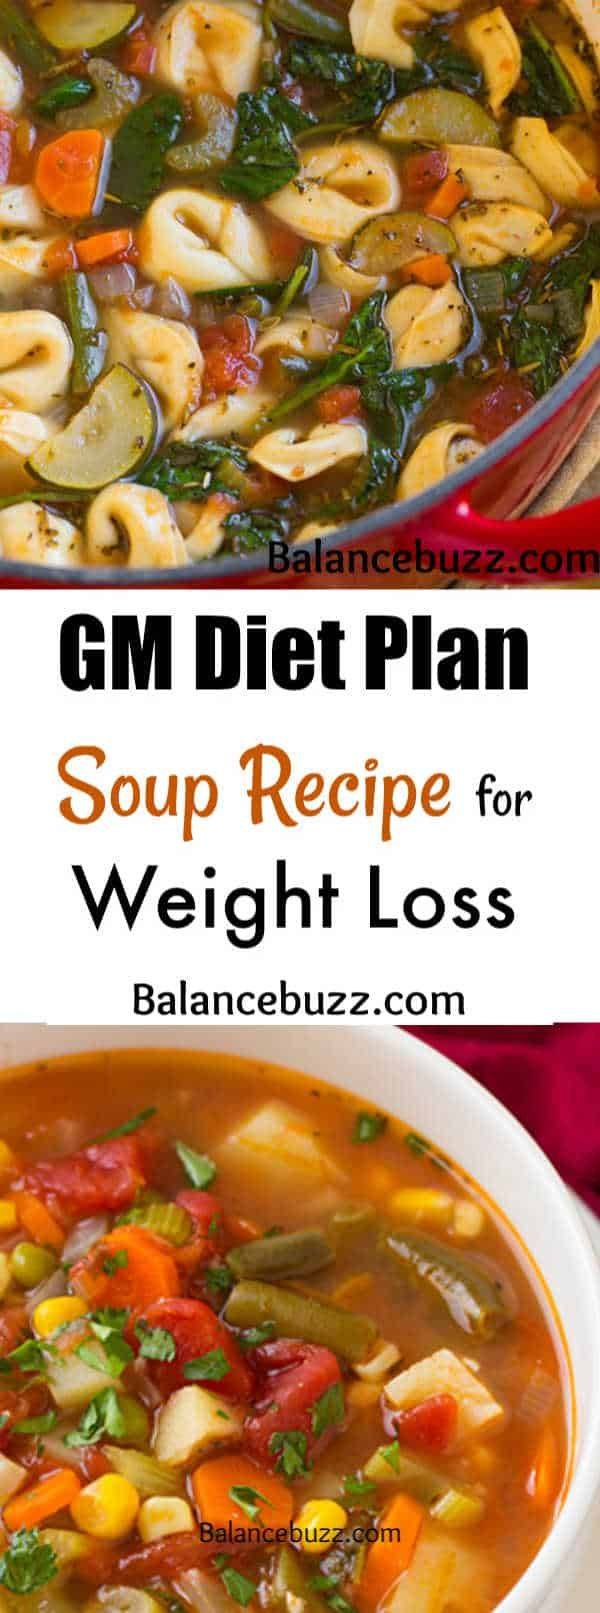 GM Diet Plan Soup Recipe for Weight Loss and Flat Belly